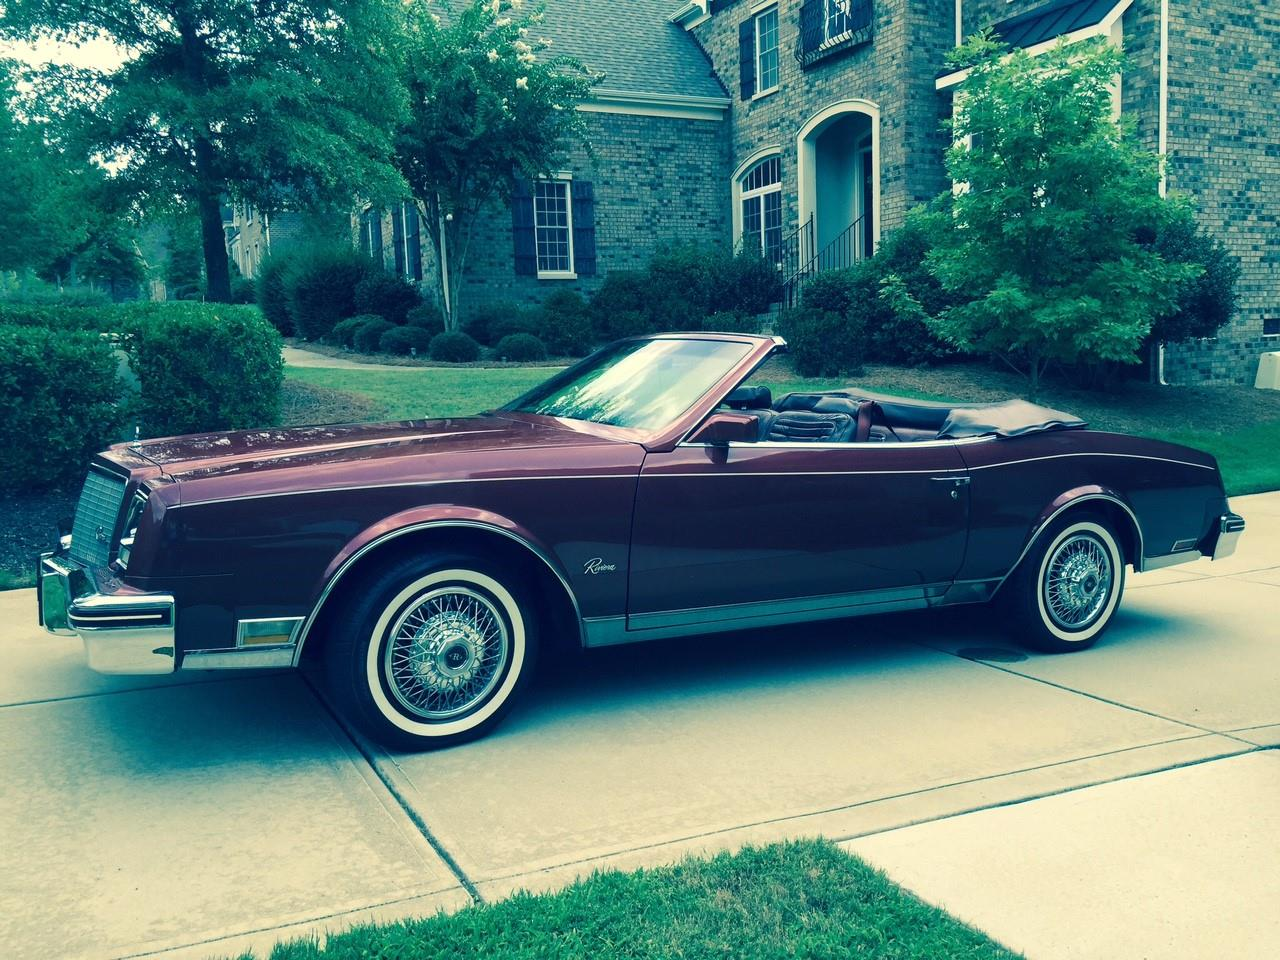 1982 buick riviera for sale   classiccars   cc-987793